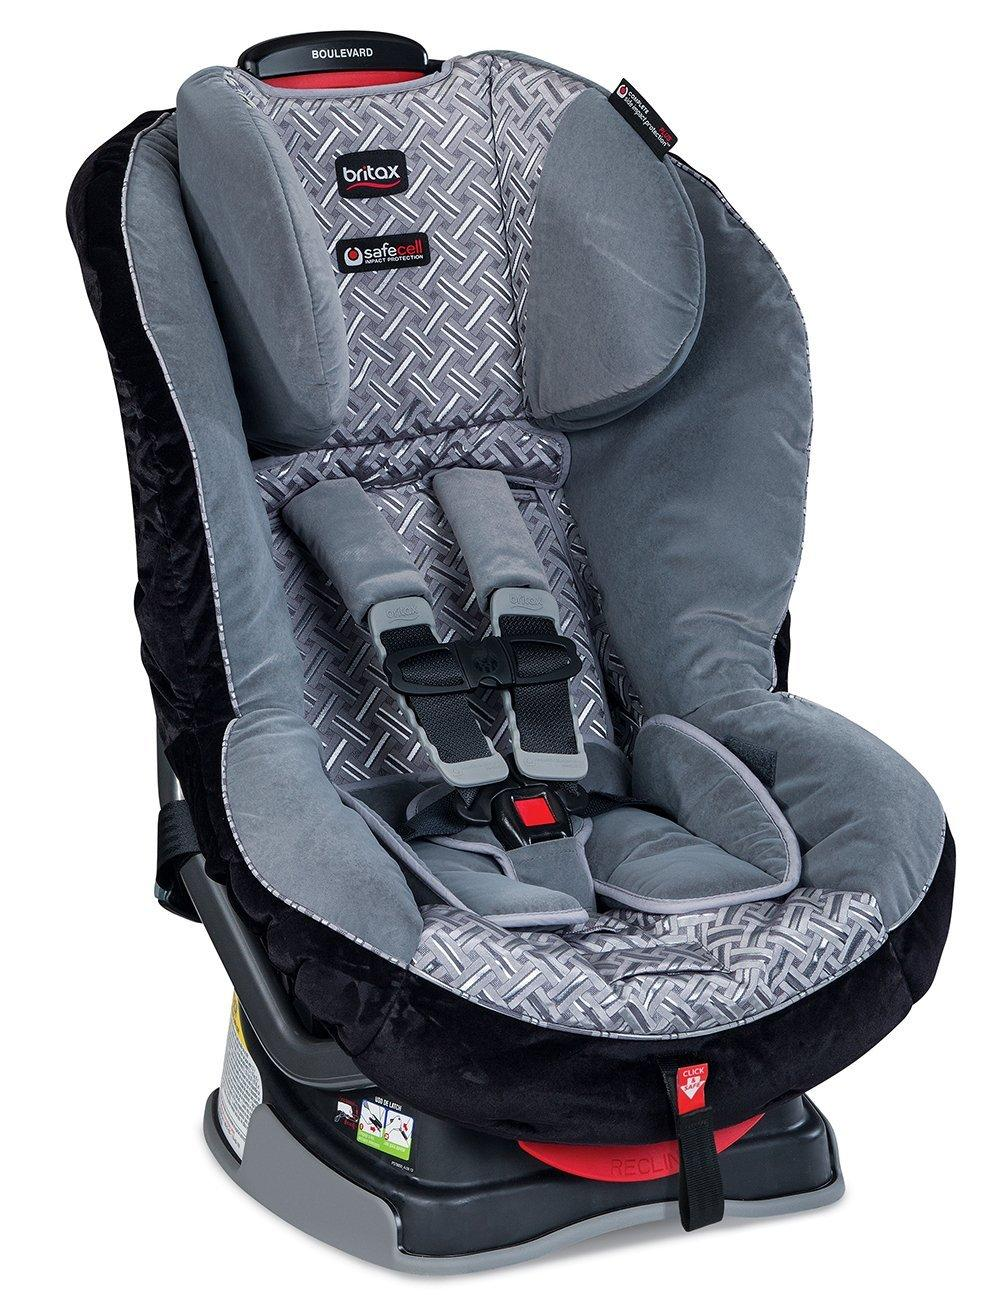 20% Off + Get $30 Gift Card + Free Shipping Select Britax Convertible Car Seat Sale @ Amazon.com